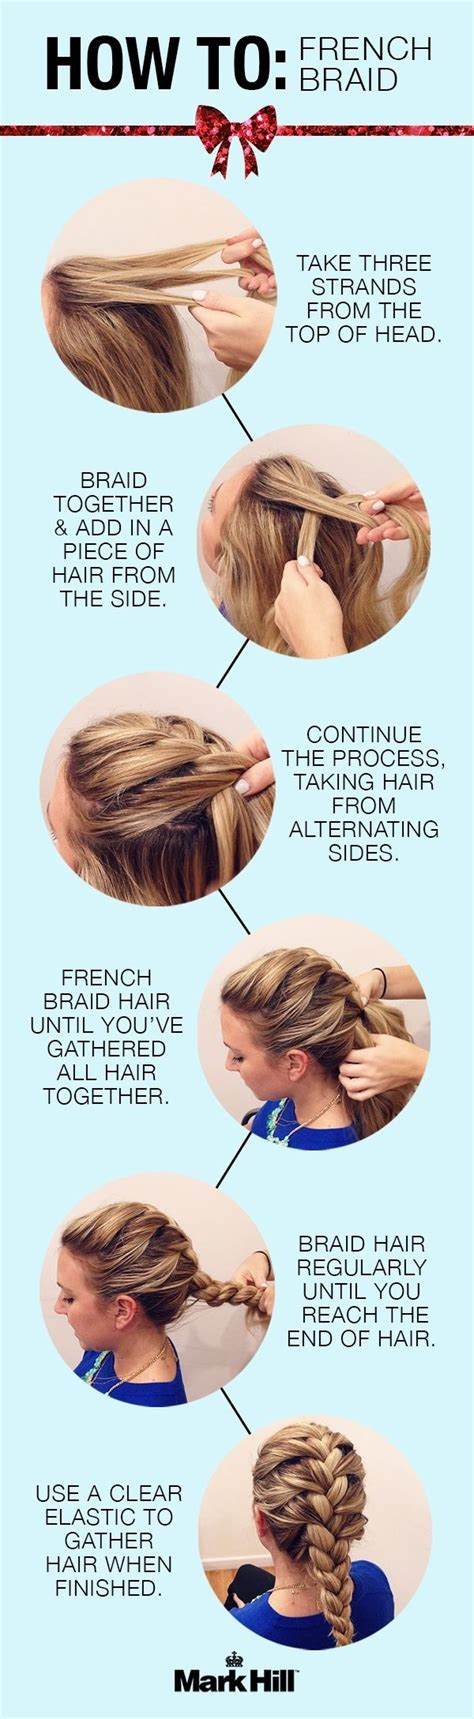 french hairstyle by own step by step easy way 10 french braids hairstyles tutorials everyday hair